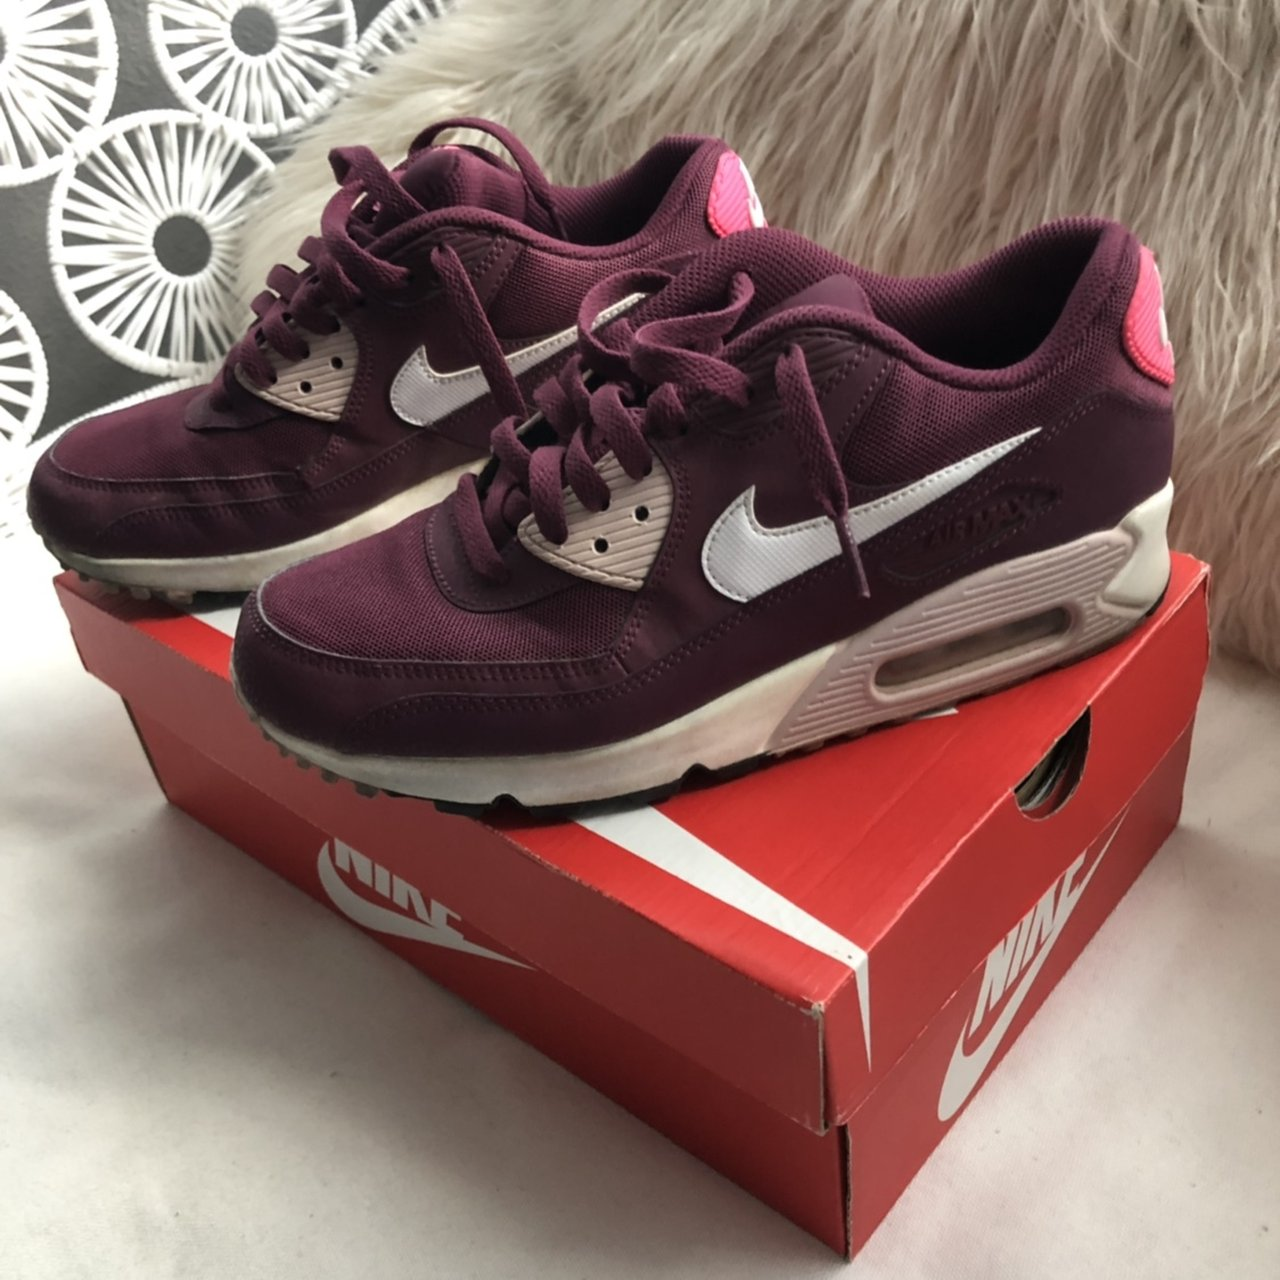 09e36c4afba Nike air max in original box Hot pink   burgundy  airmax - Depop